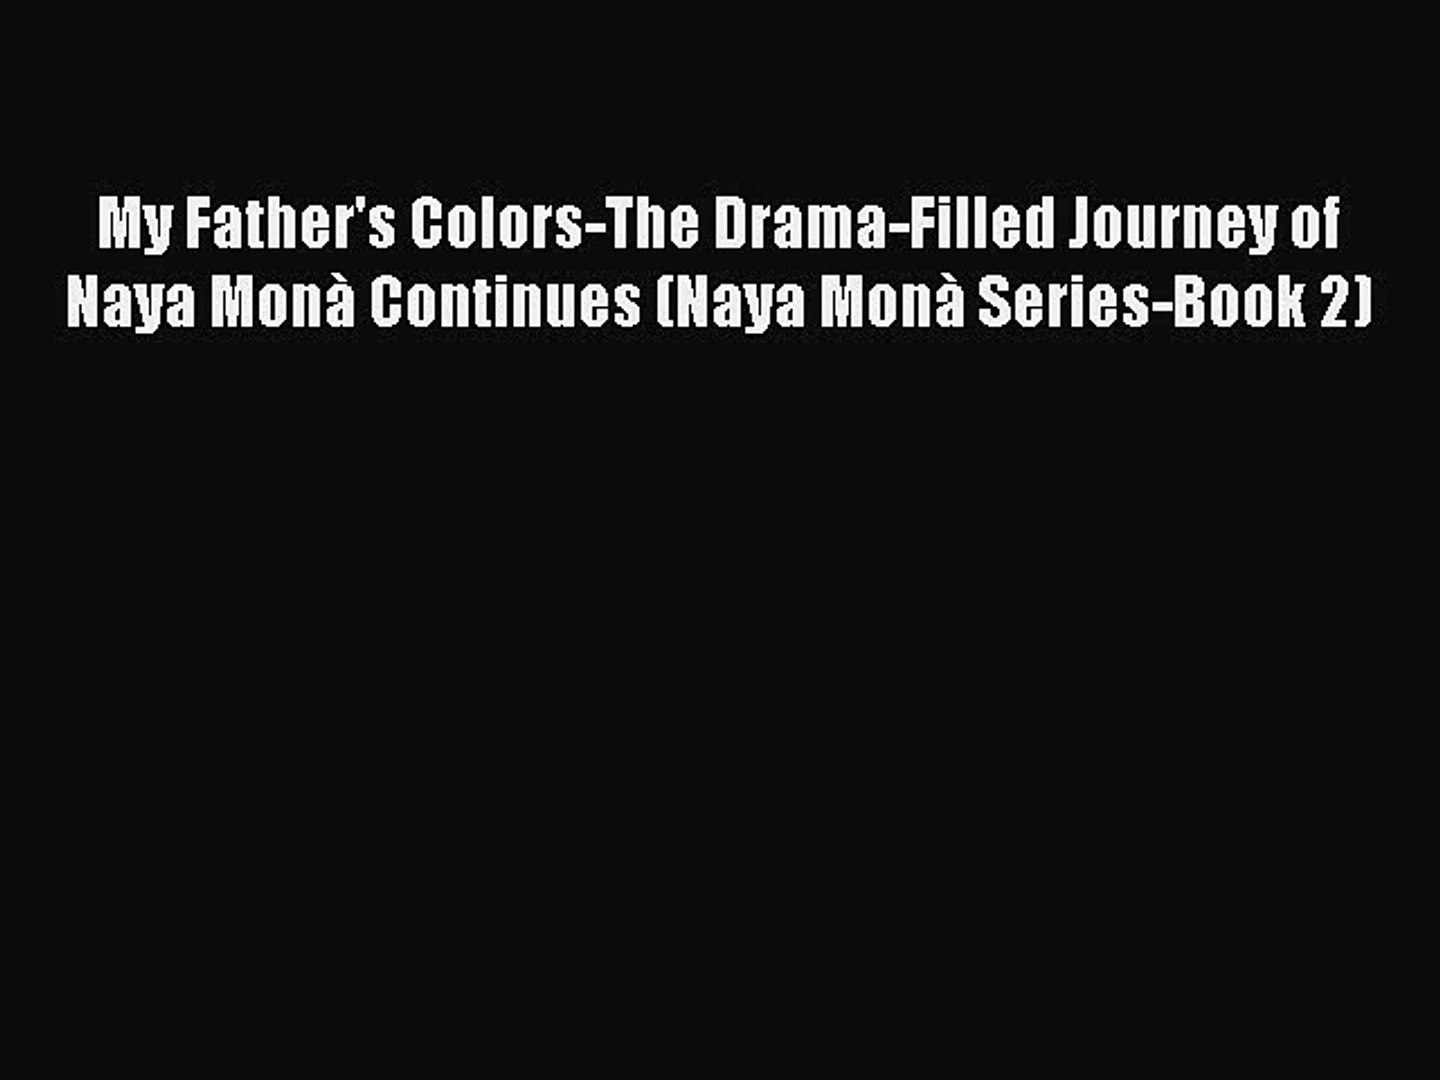 [Read book] My Father's Colors-The Drama-Filled Journey of Naya Monà Continues (Naya Monà Serie